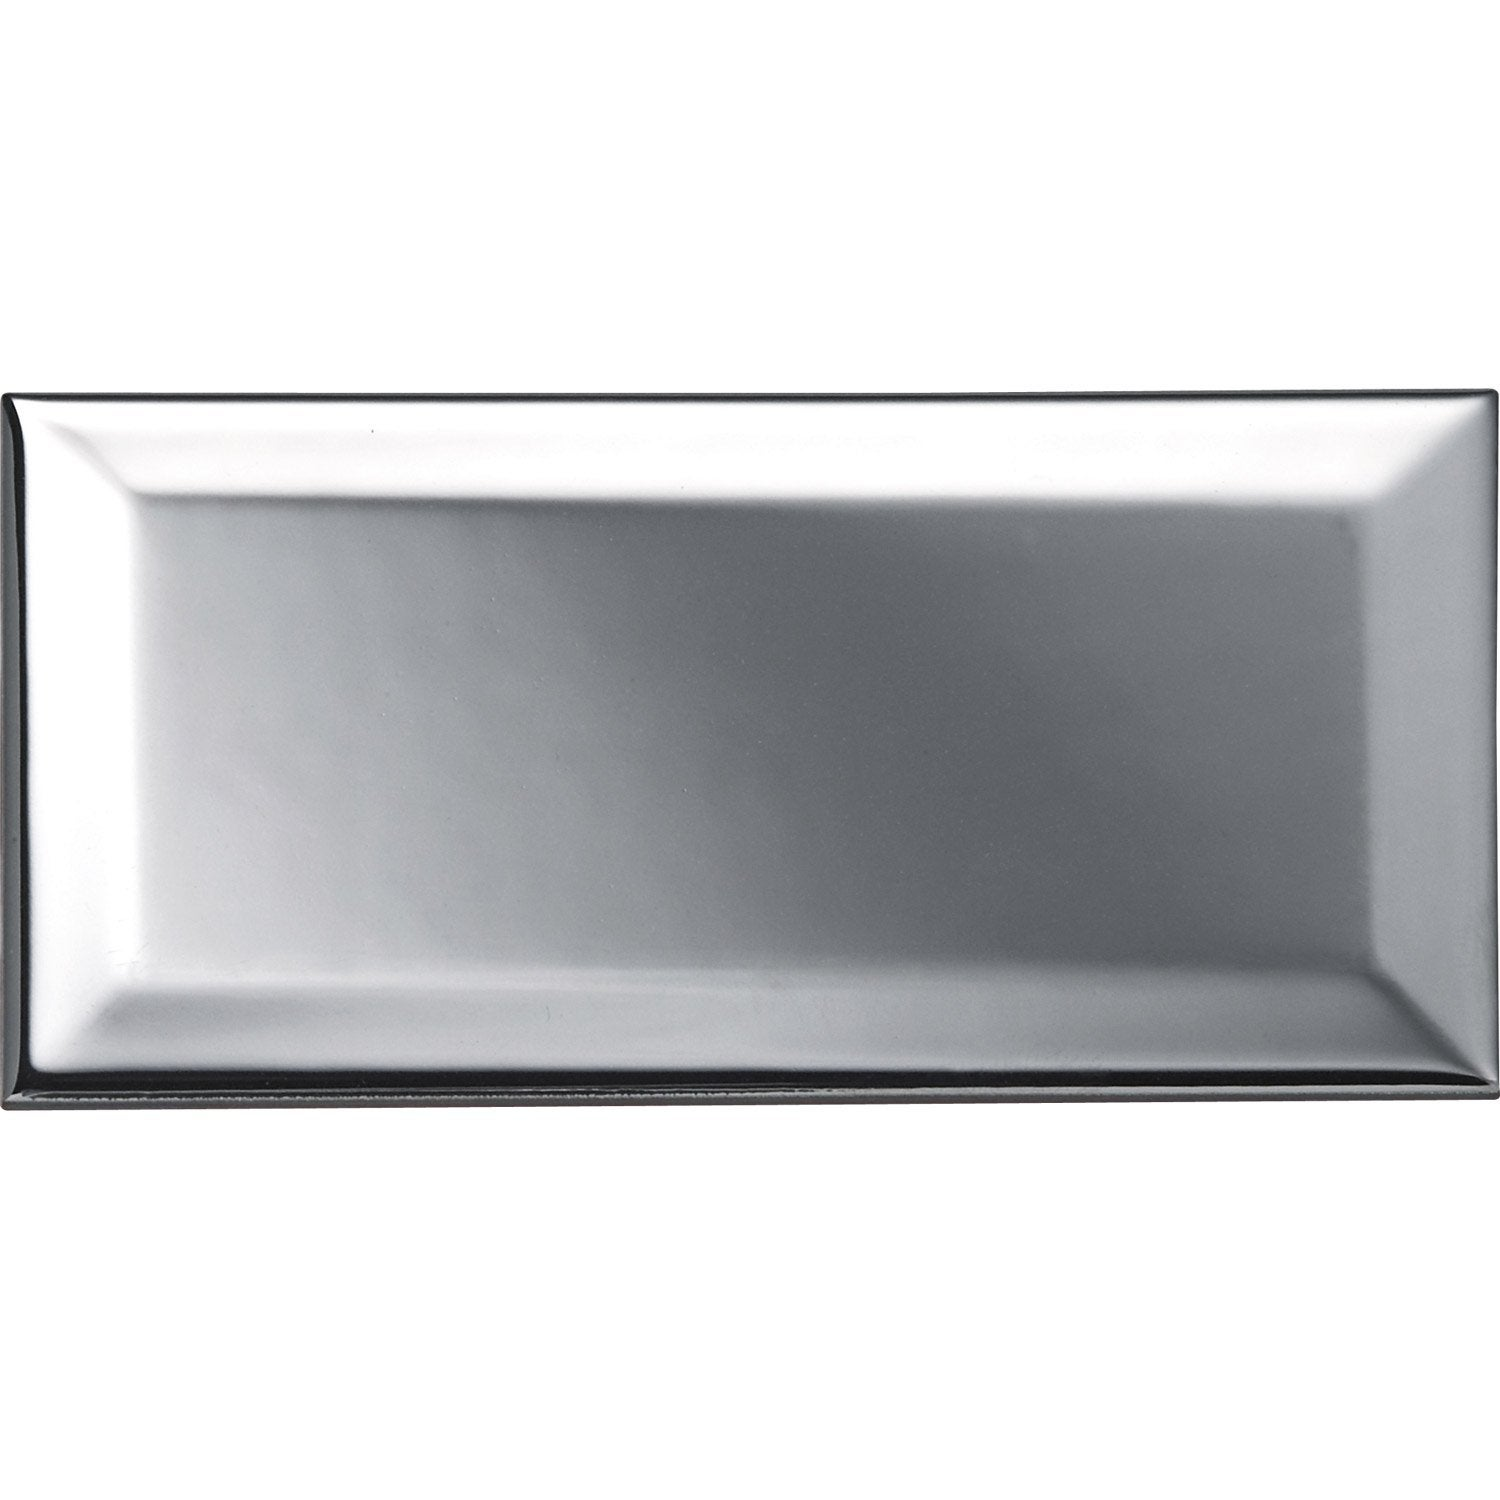 Carreau m tro argent l 7 5 x cm leroy merlin for Carrelage ceramique leroy merlin